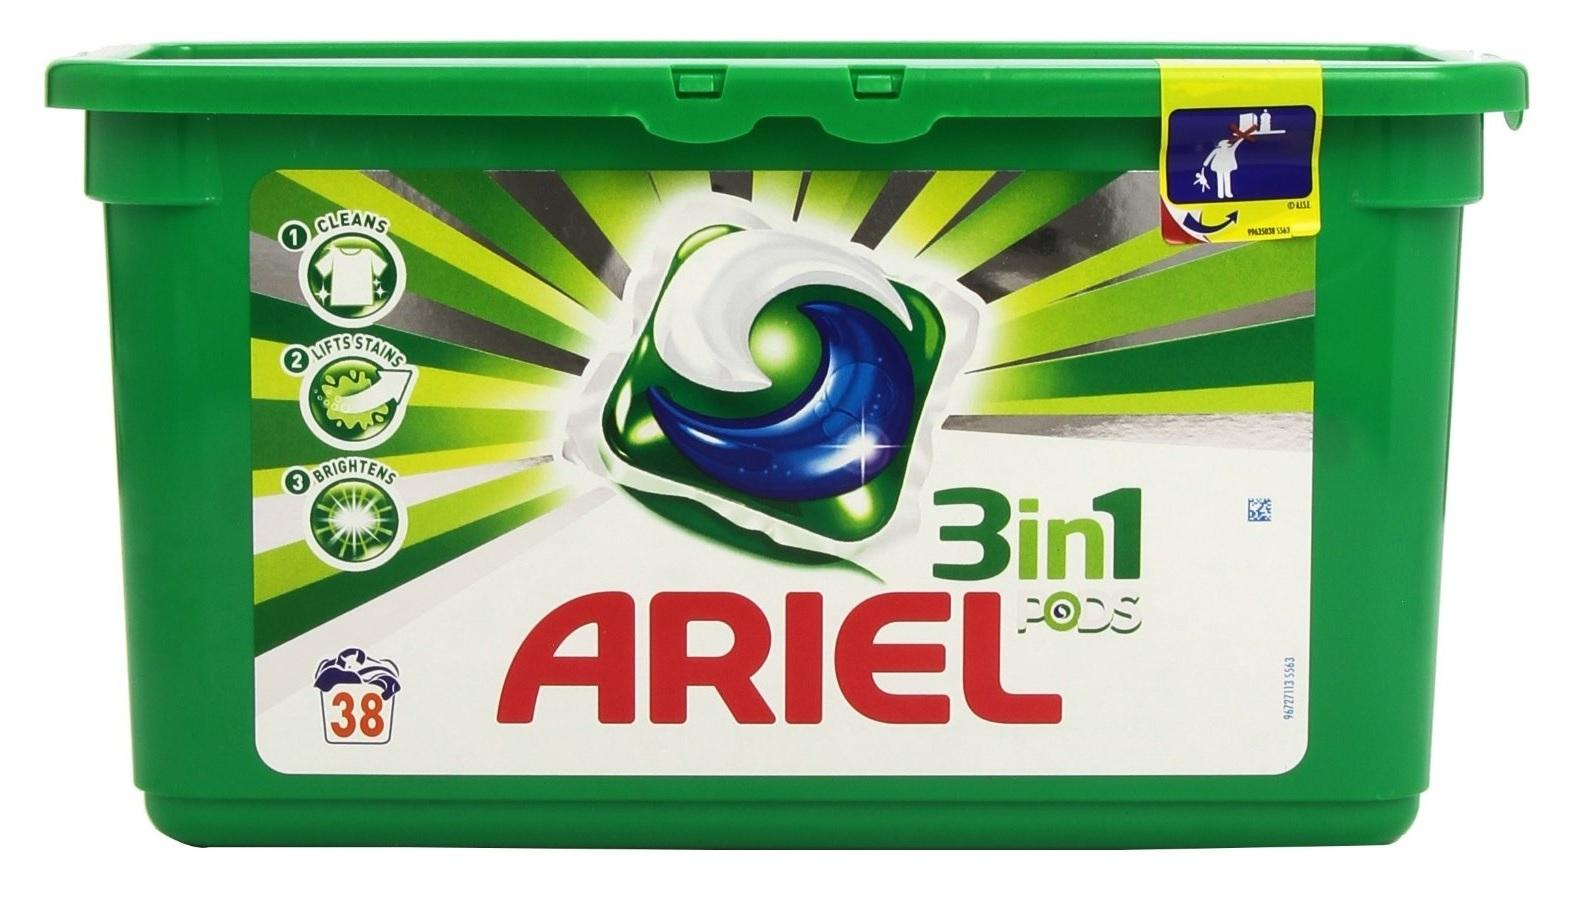 Ariel PODS 3in1 Regular - 38 wasbeurten